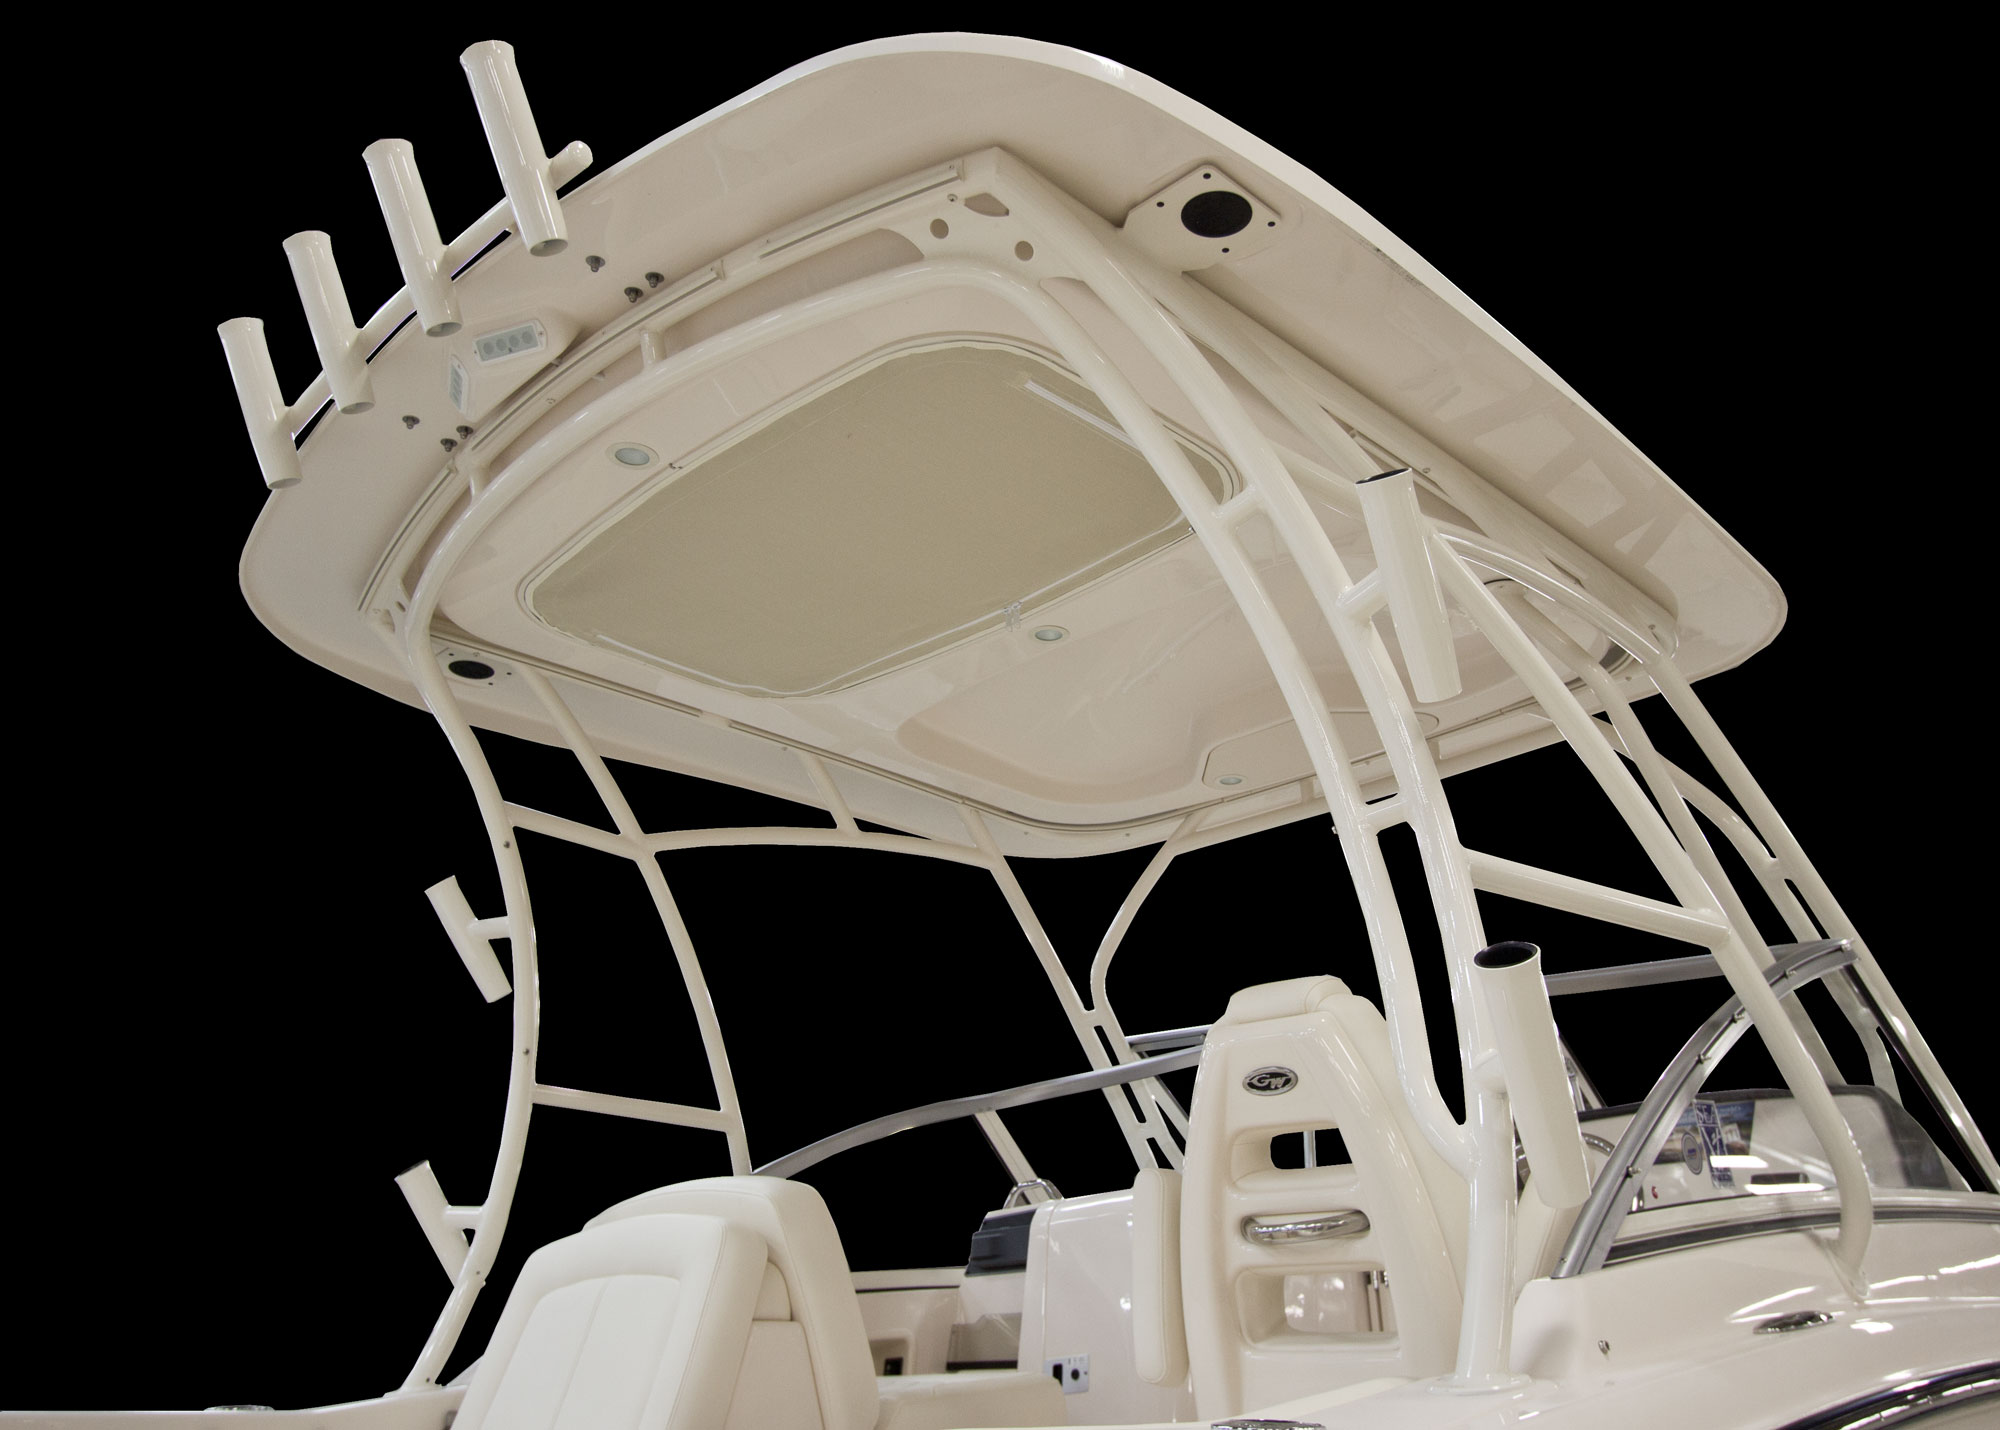 Grady-White Freedom 235 23-foot dual console hardtop top mounted rod holders